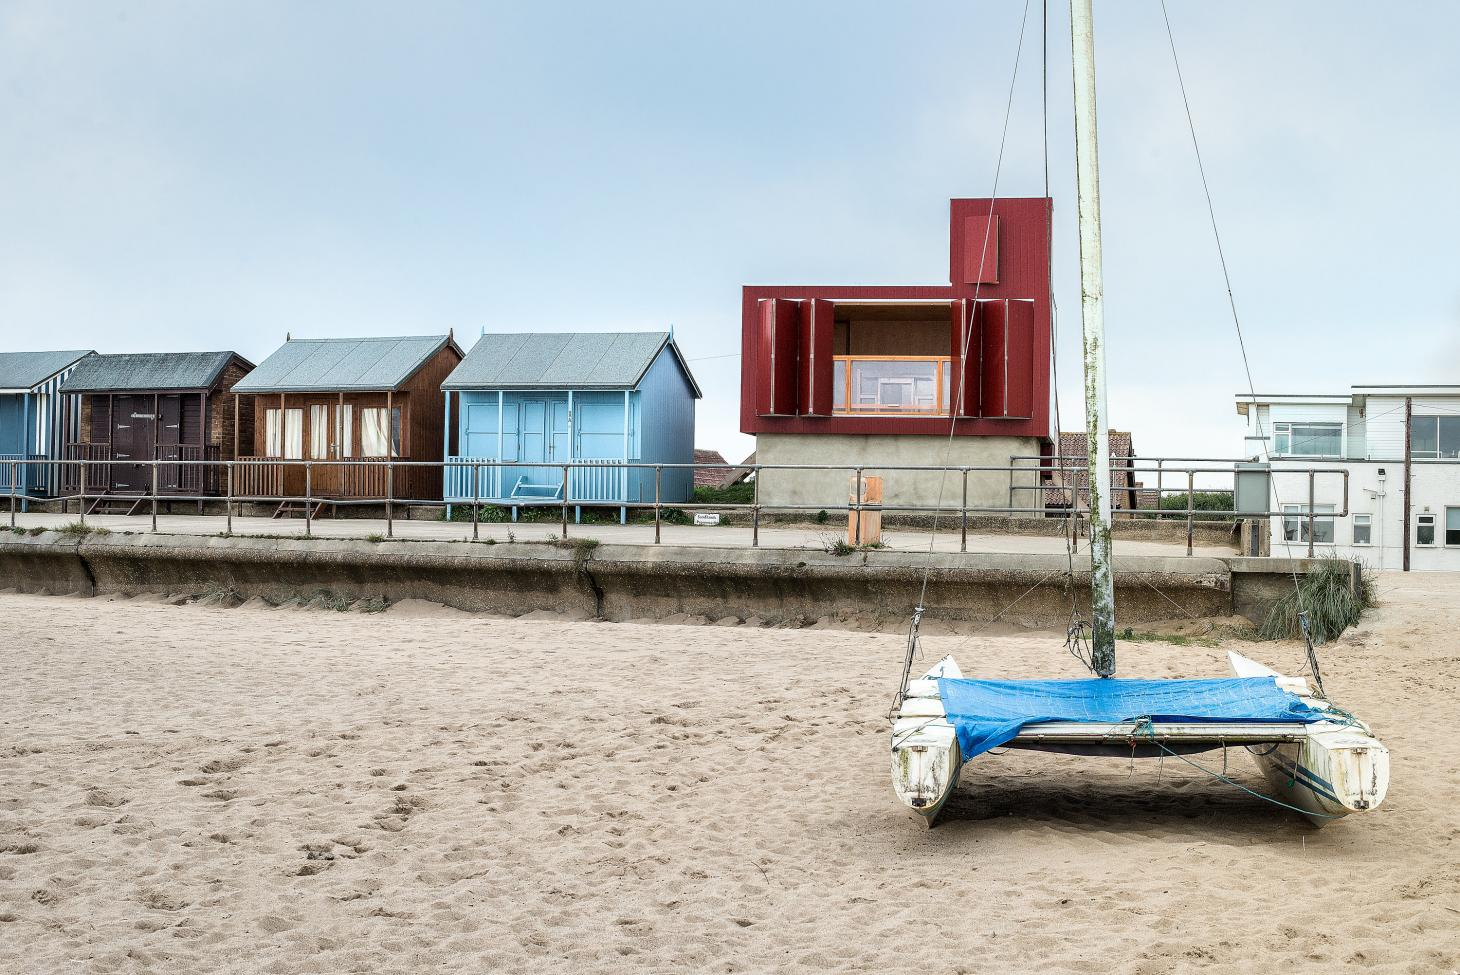 Colourful seaside cabins designed by architects on a beach